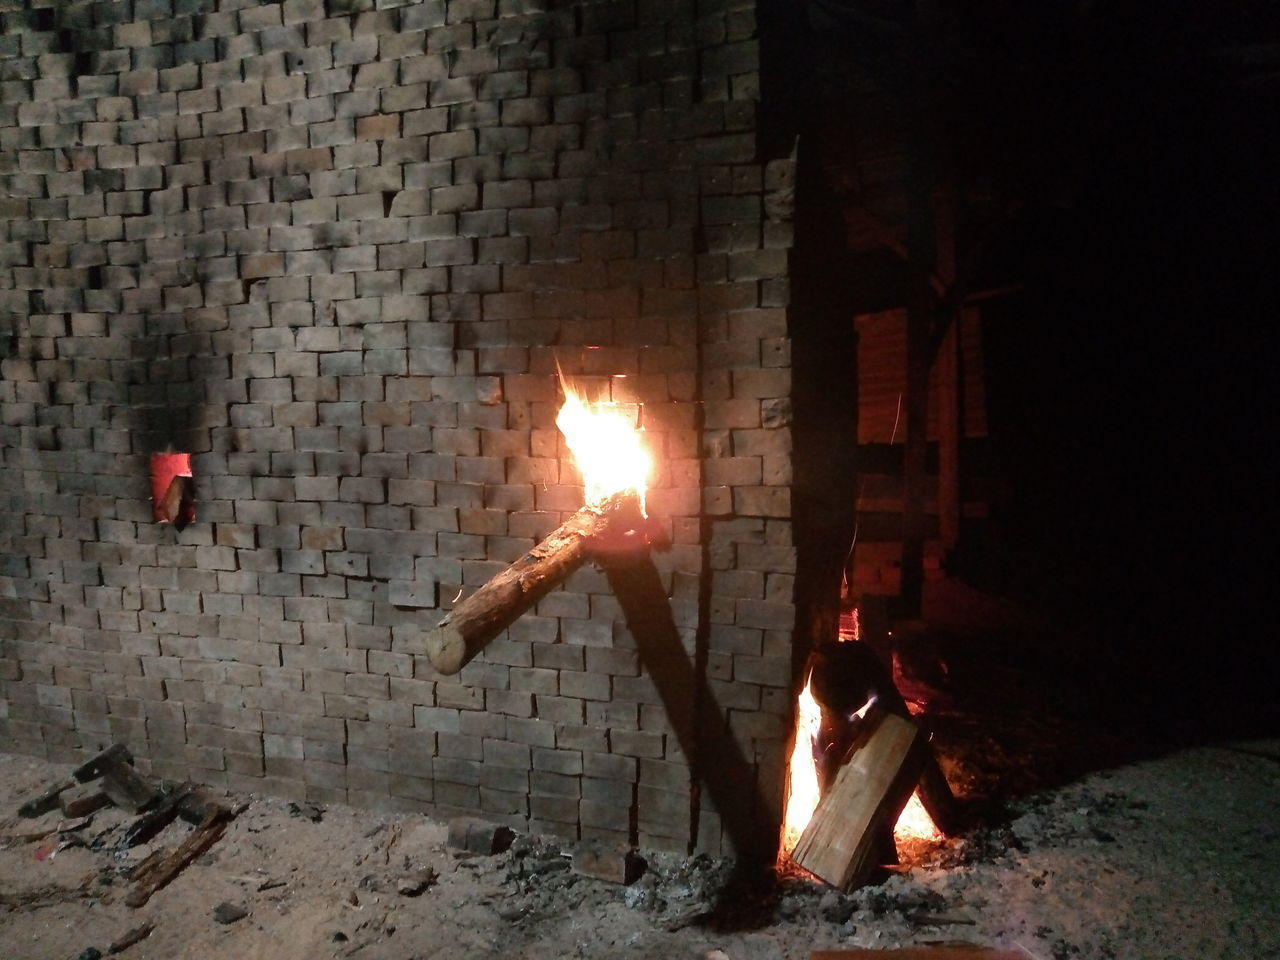 burning, heat - temperature, fire, flame, fire - natural phenomenon, illuminated, nature, glowing, night, firewood, log, wood - material, wood, no people, fireplace, motion, architecture, wall, built structure, environment